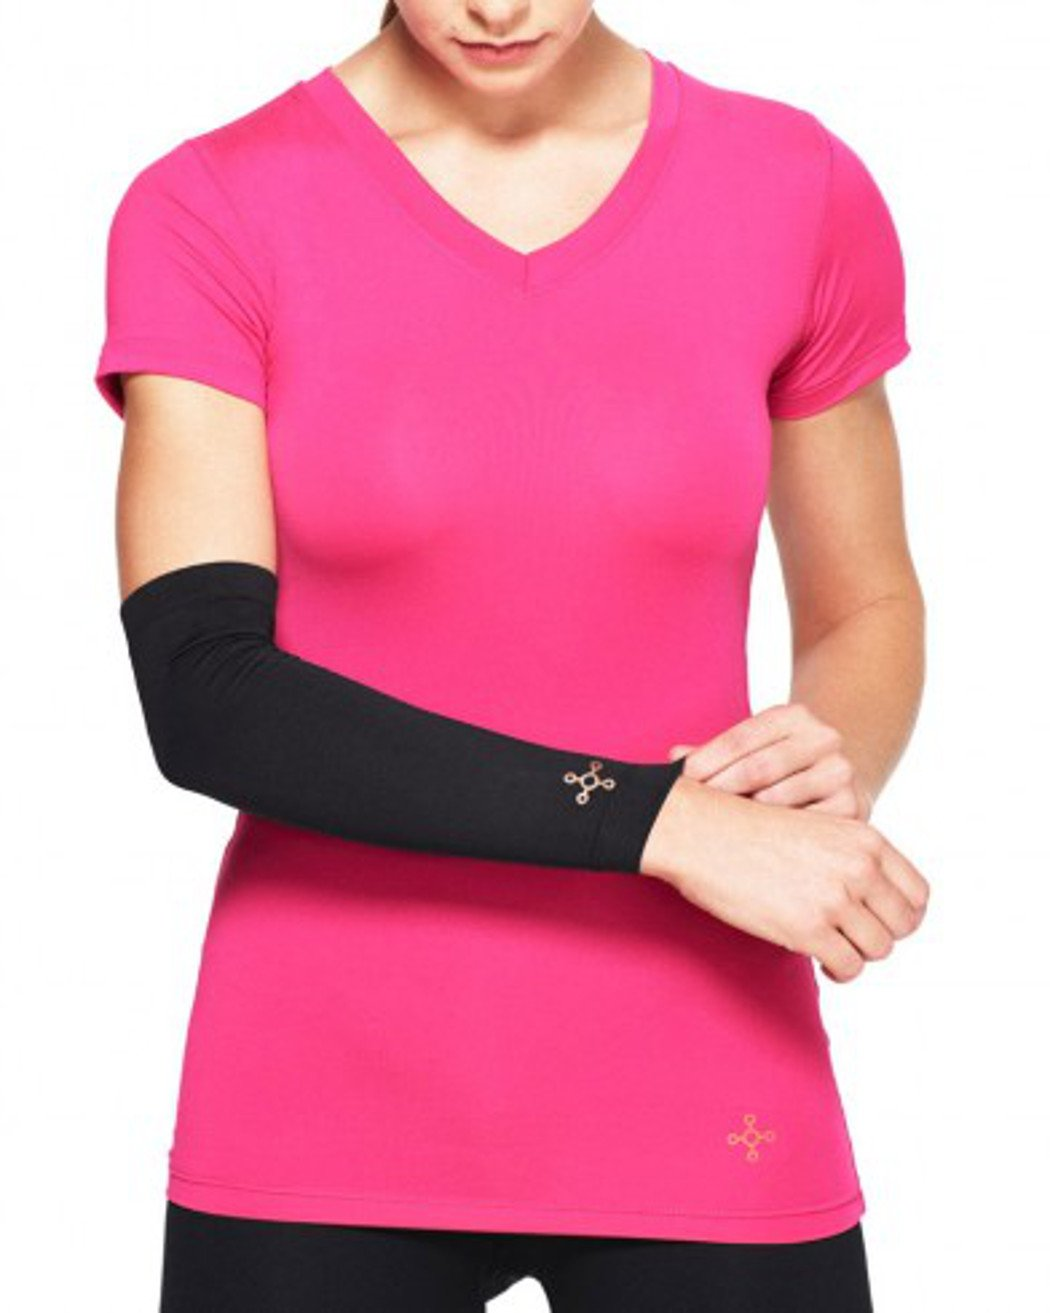 b6db857eb9 Tommie Copper Women Compression Full Arm Sleeve -- Free Shipping ...